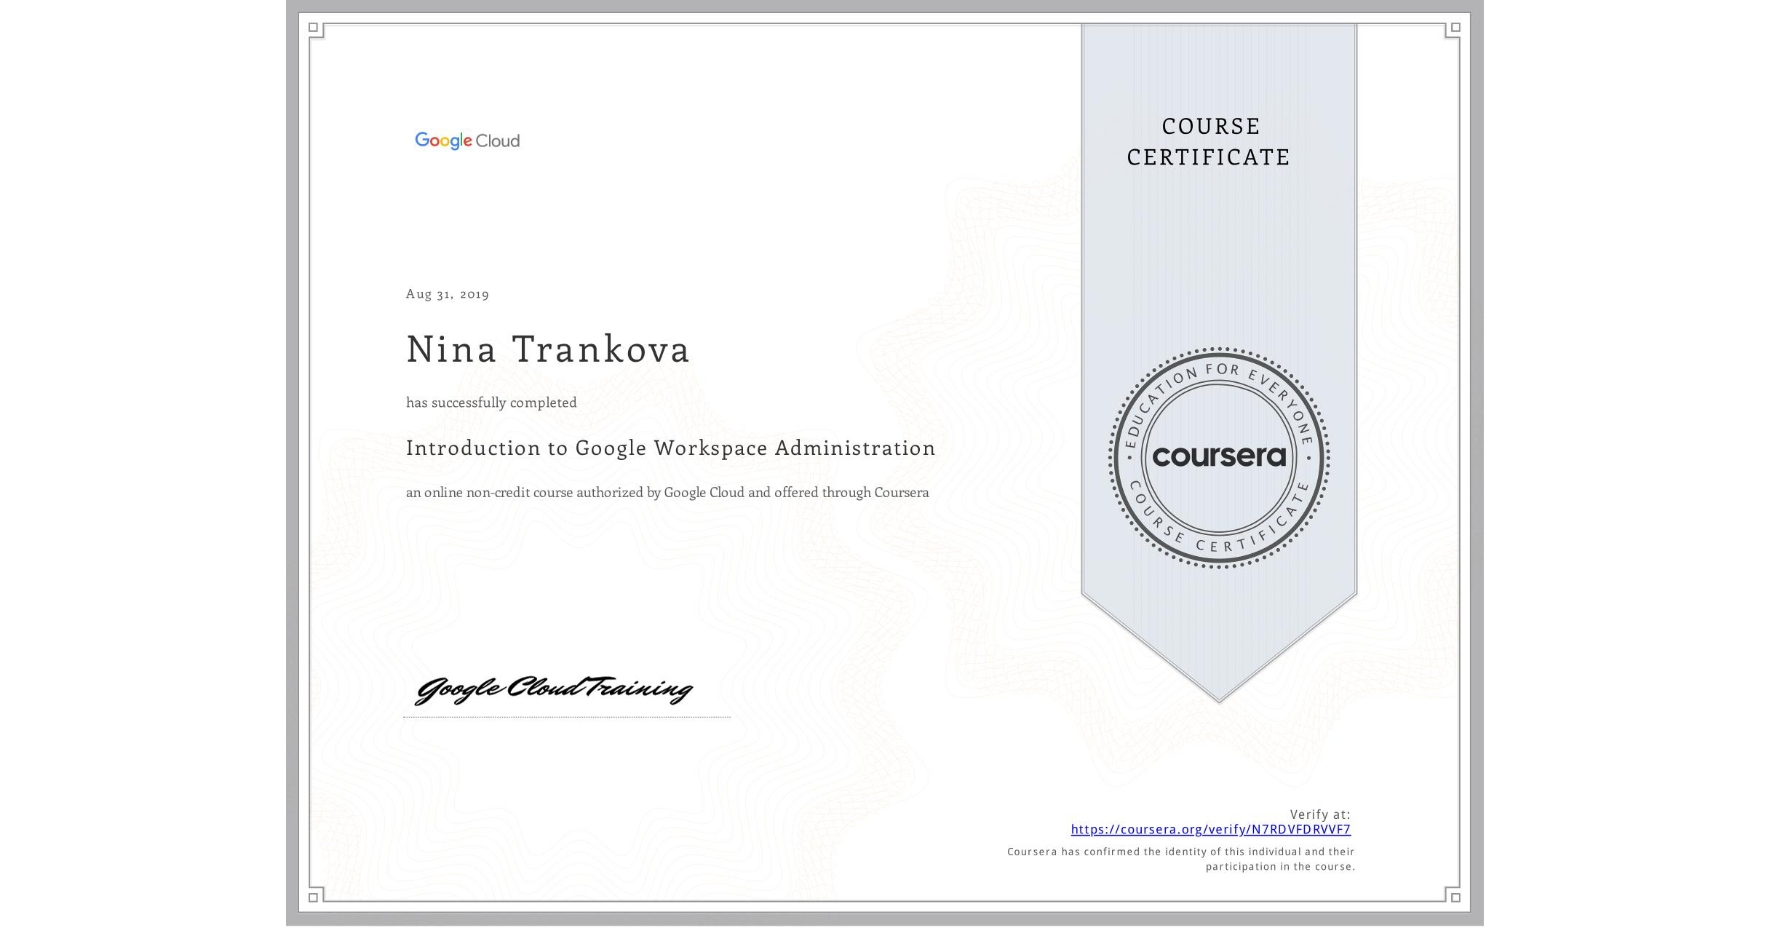 View certificate for Nina Trankova,  Introduction to G Suite, an online non-credit course authorized by Google Cloud and offered through Coursera